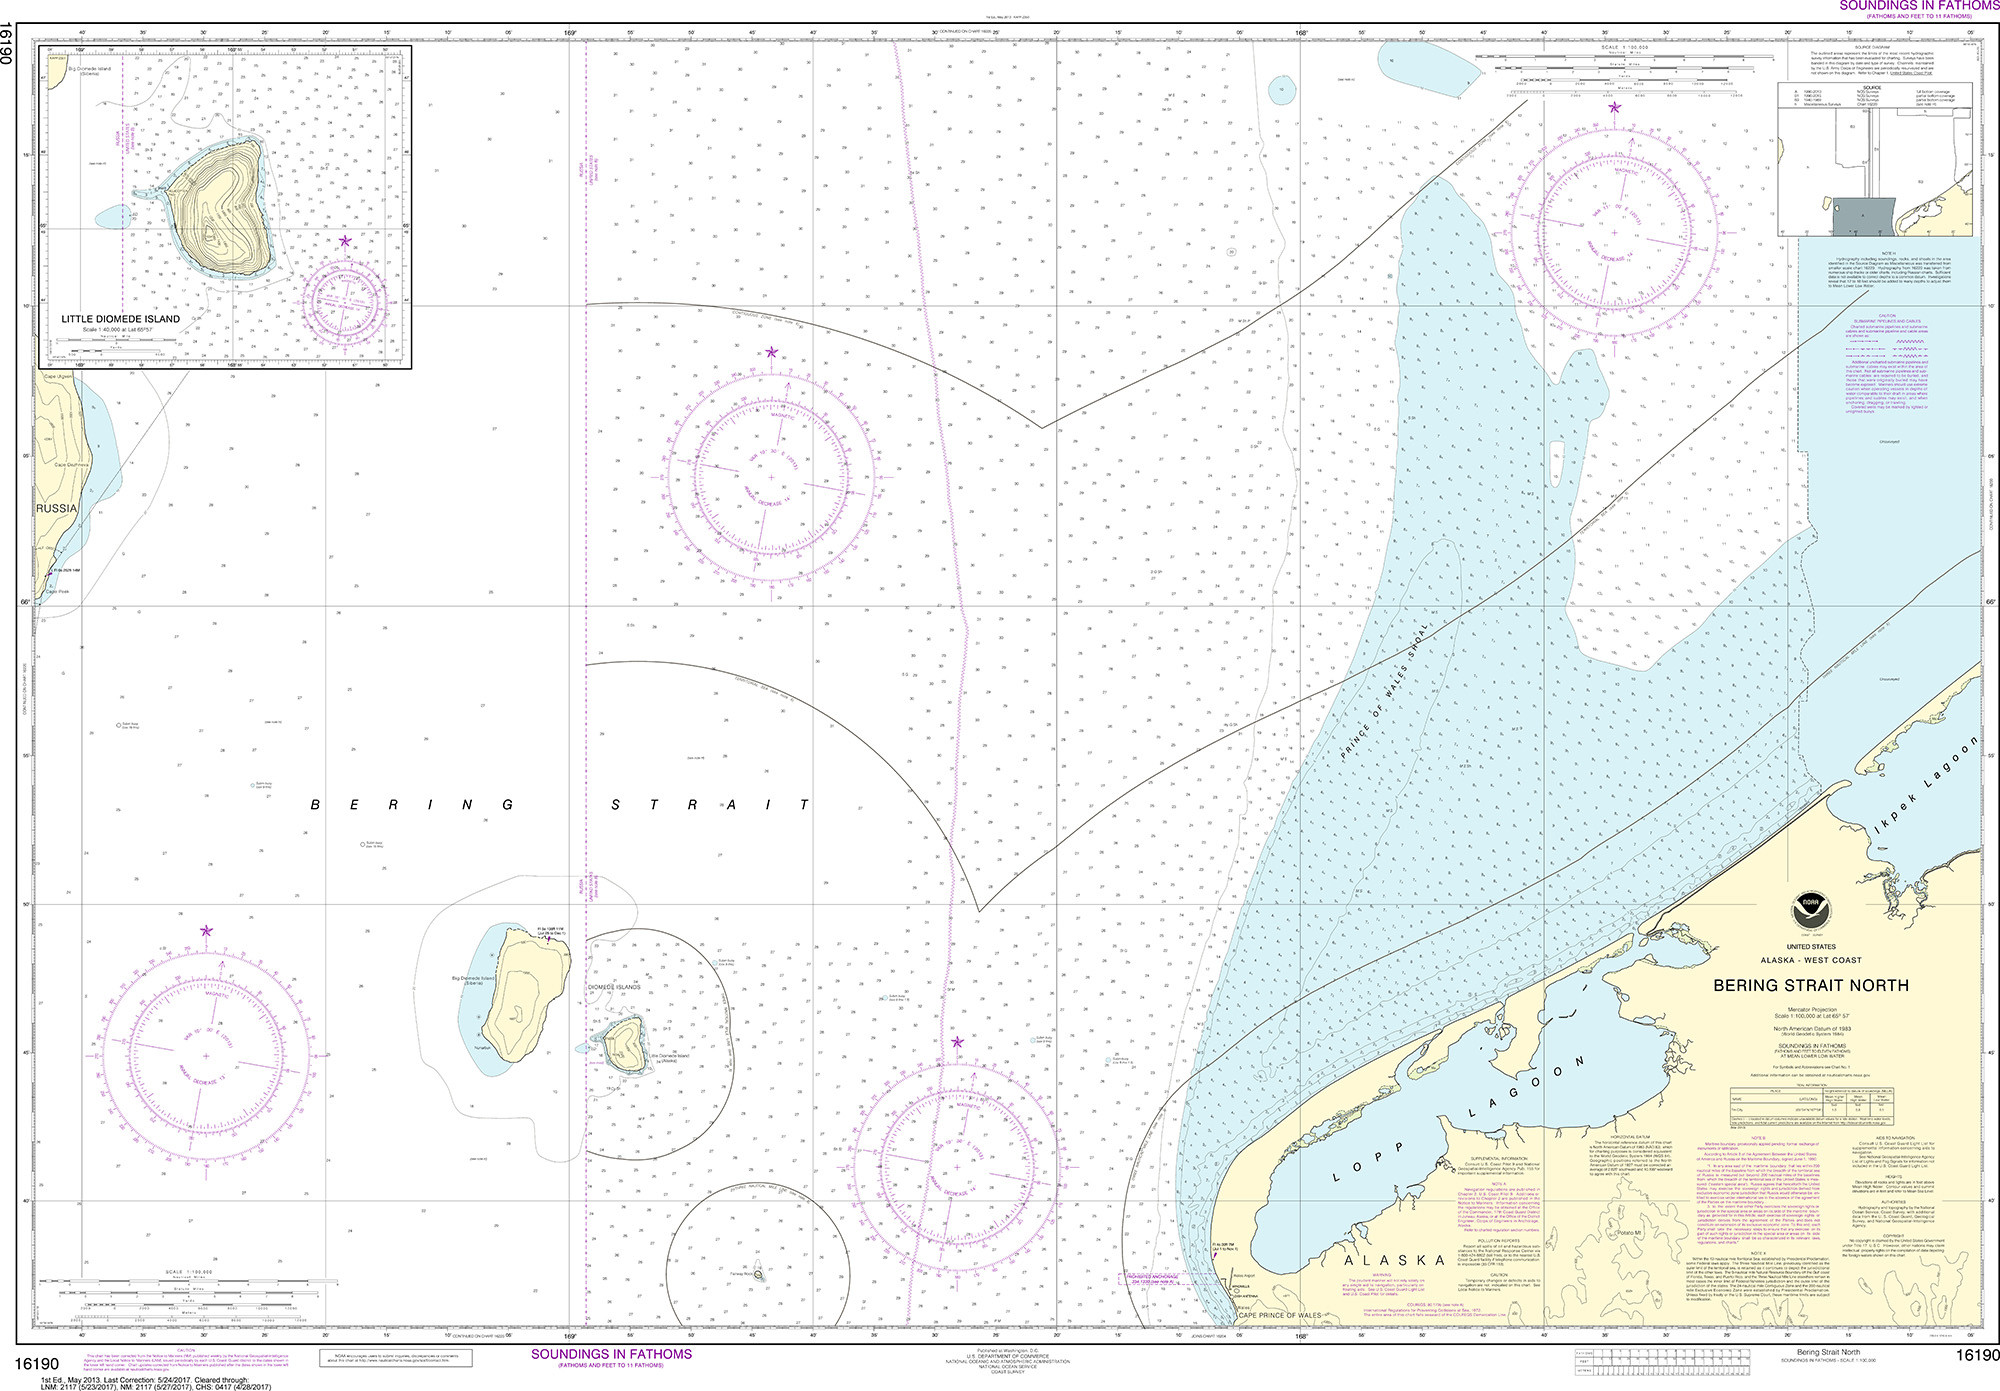 Image of: Noaa Nautical Chart 16190 Bering Strait North Little Diomede Island